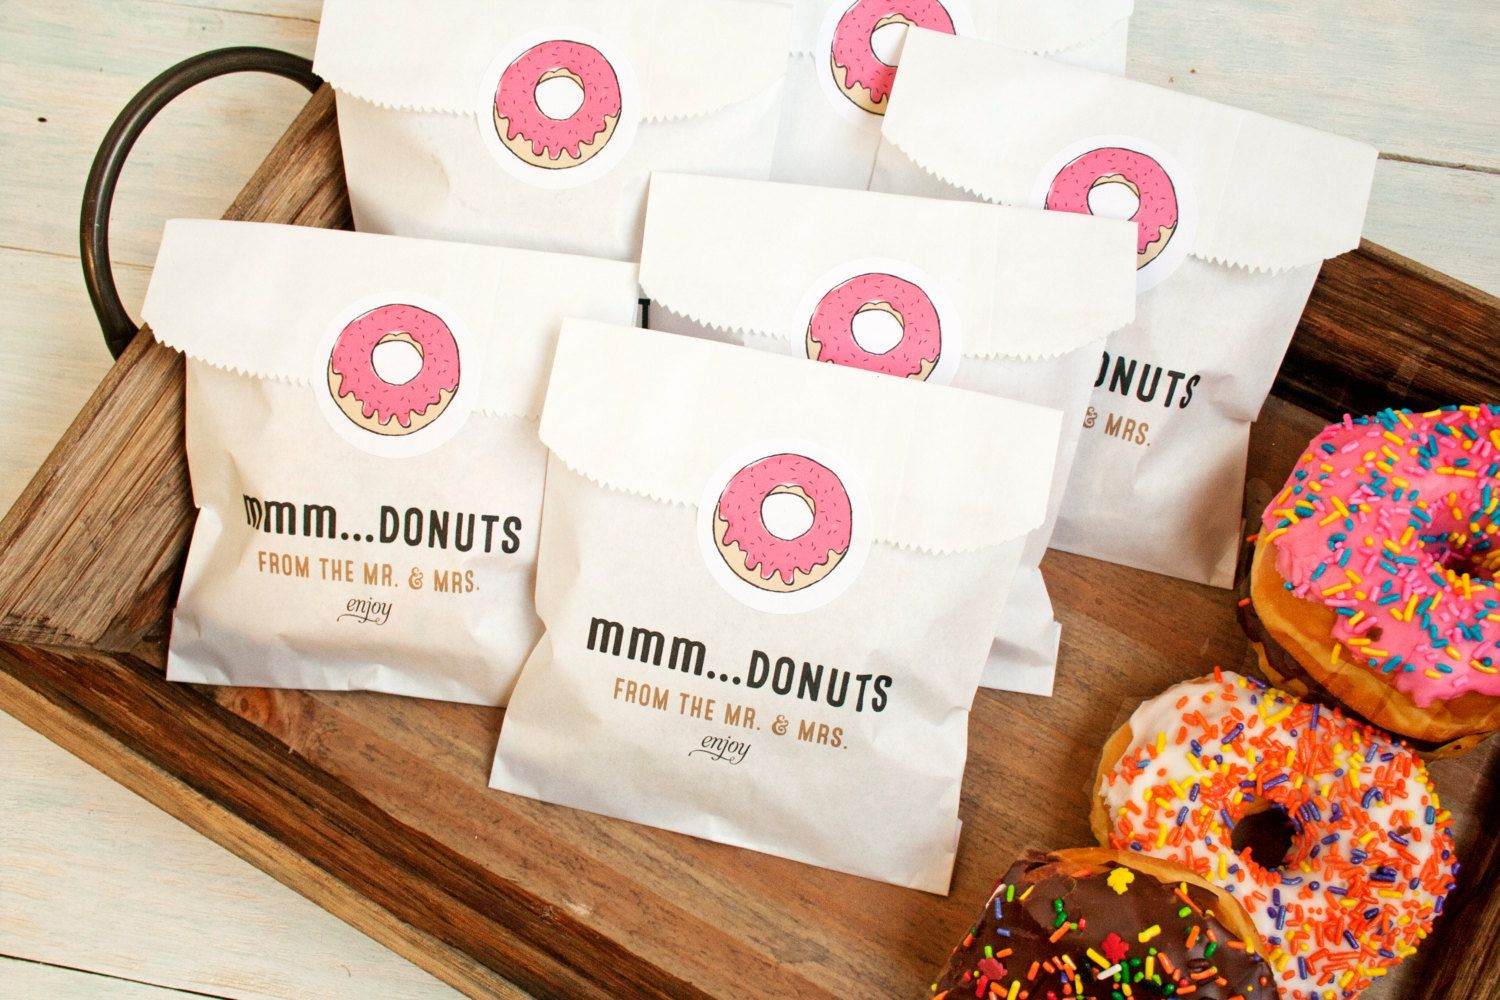 17 Edible Wedding Favors Your Guests Will Love | Donut bag, Favors ...